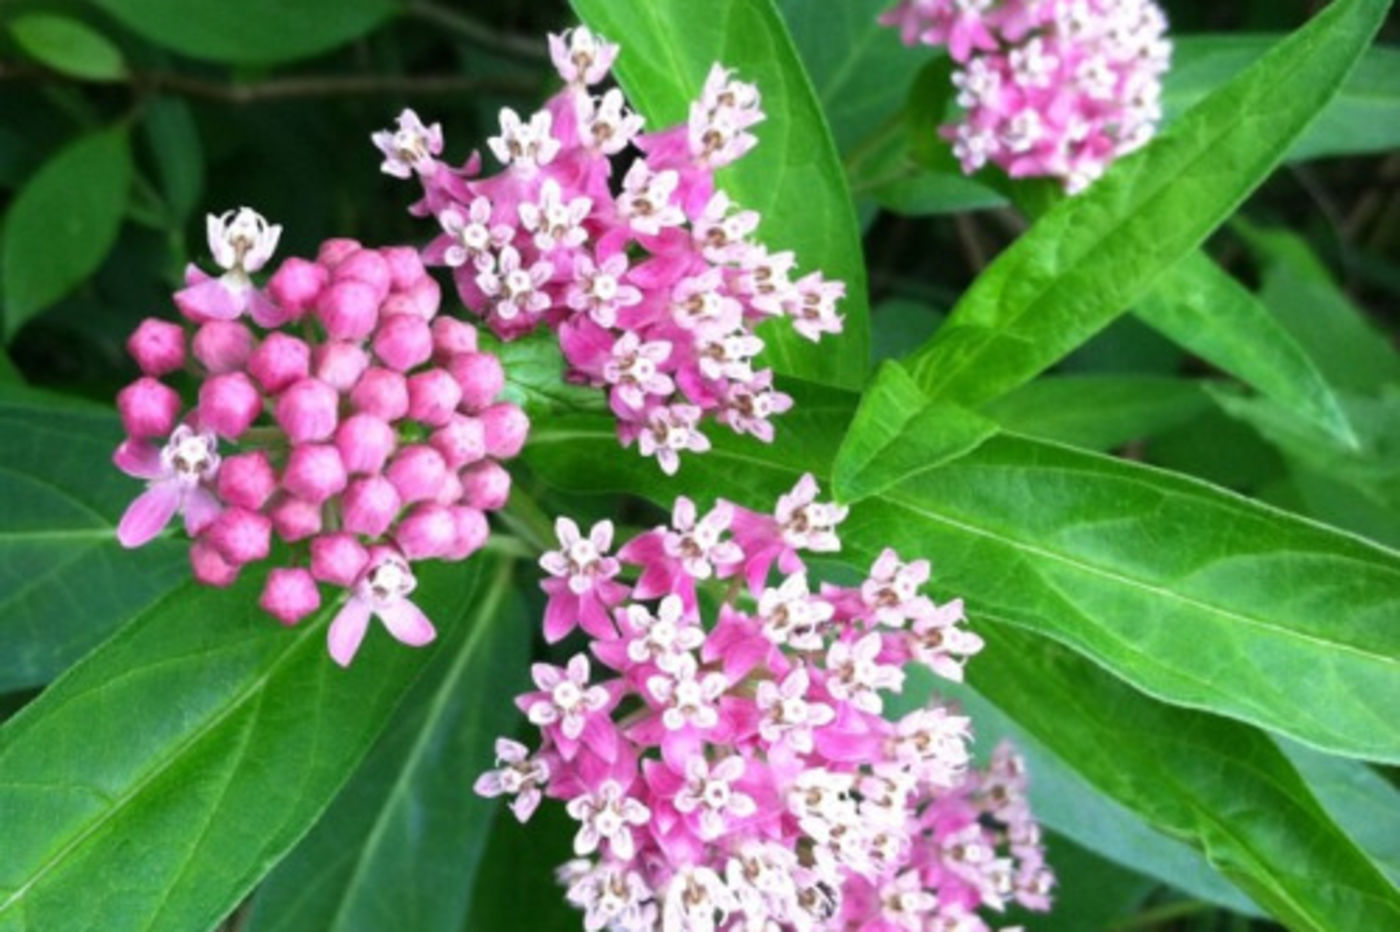 Looking Down On A Plant With Large Green Leaves And Bunches Of Small Pink White